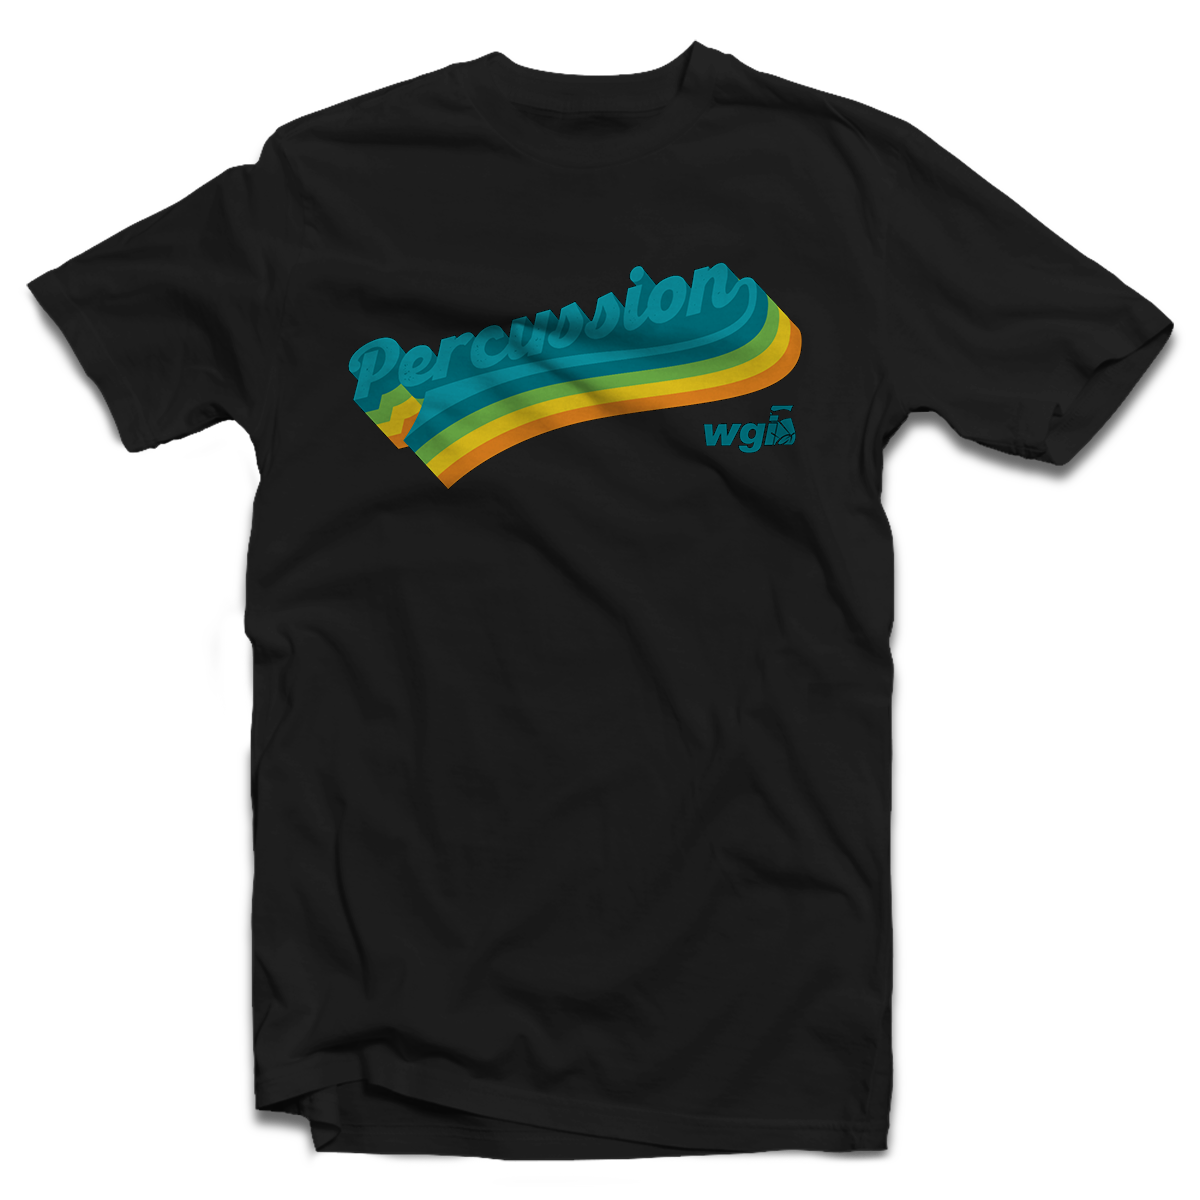 WGI Percussion Retro T-Shirt